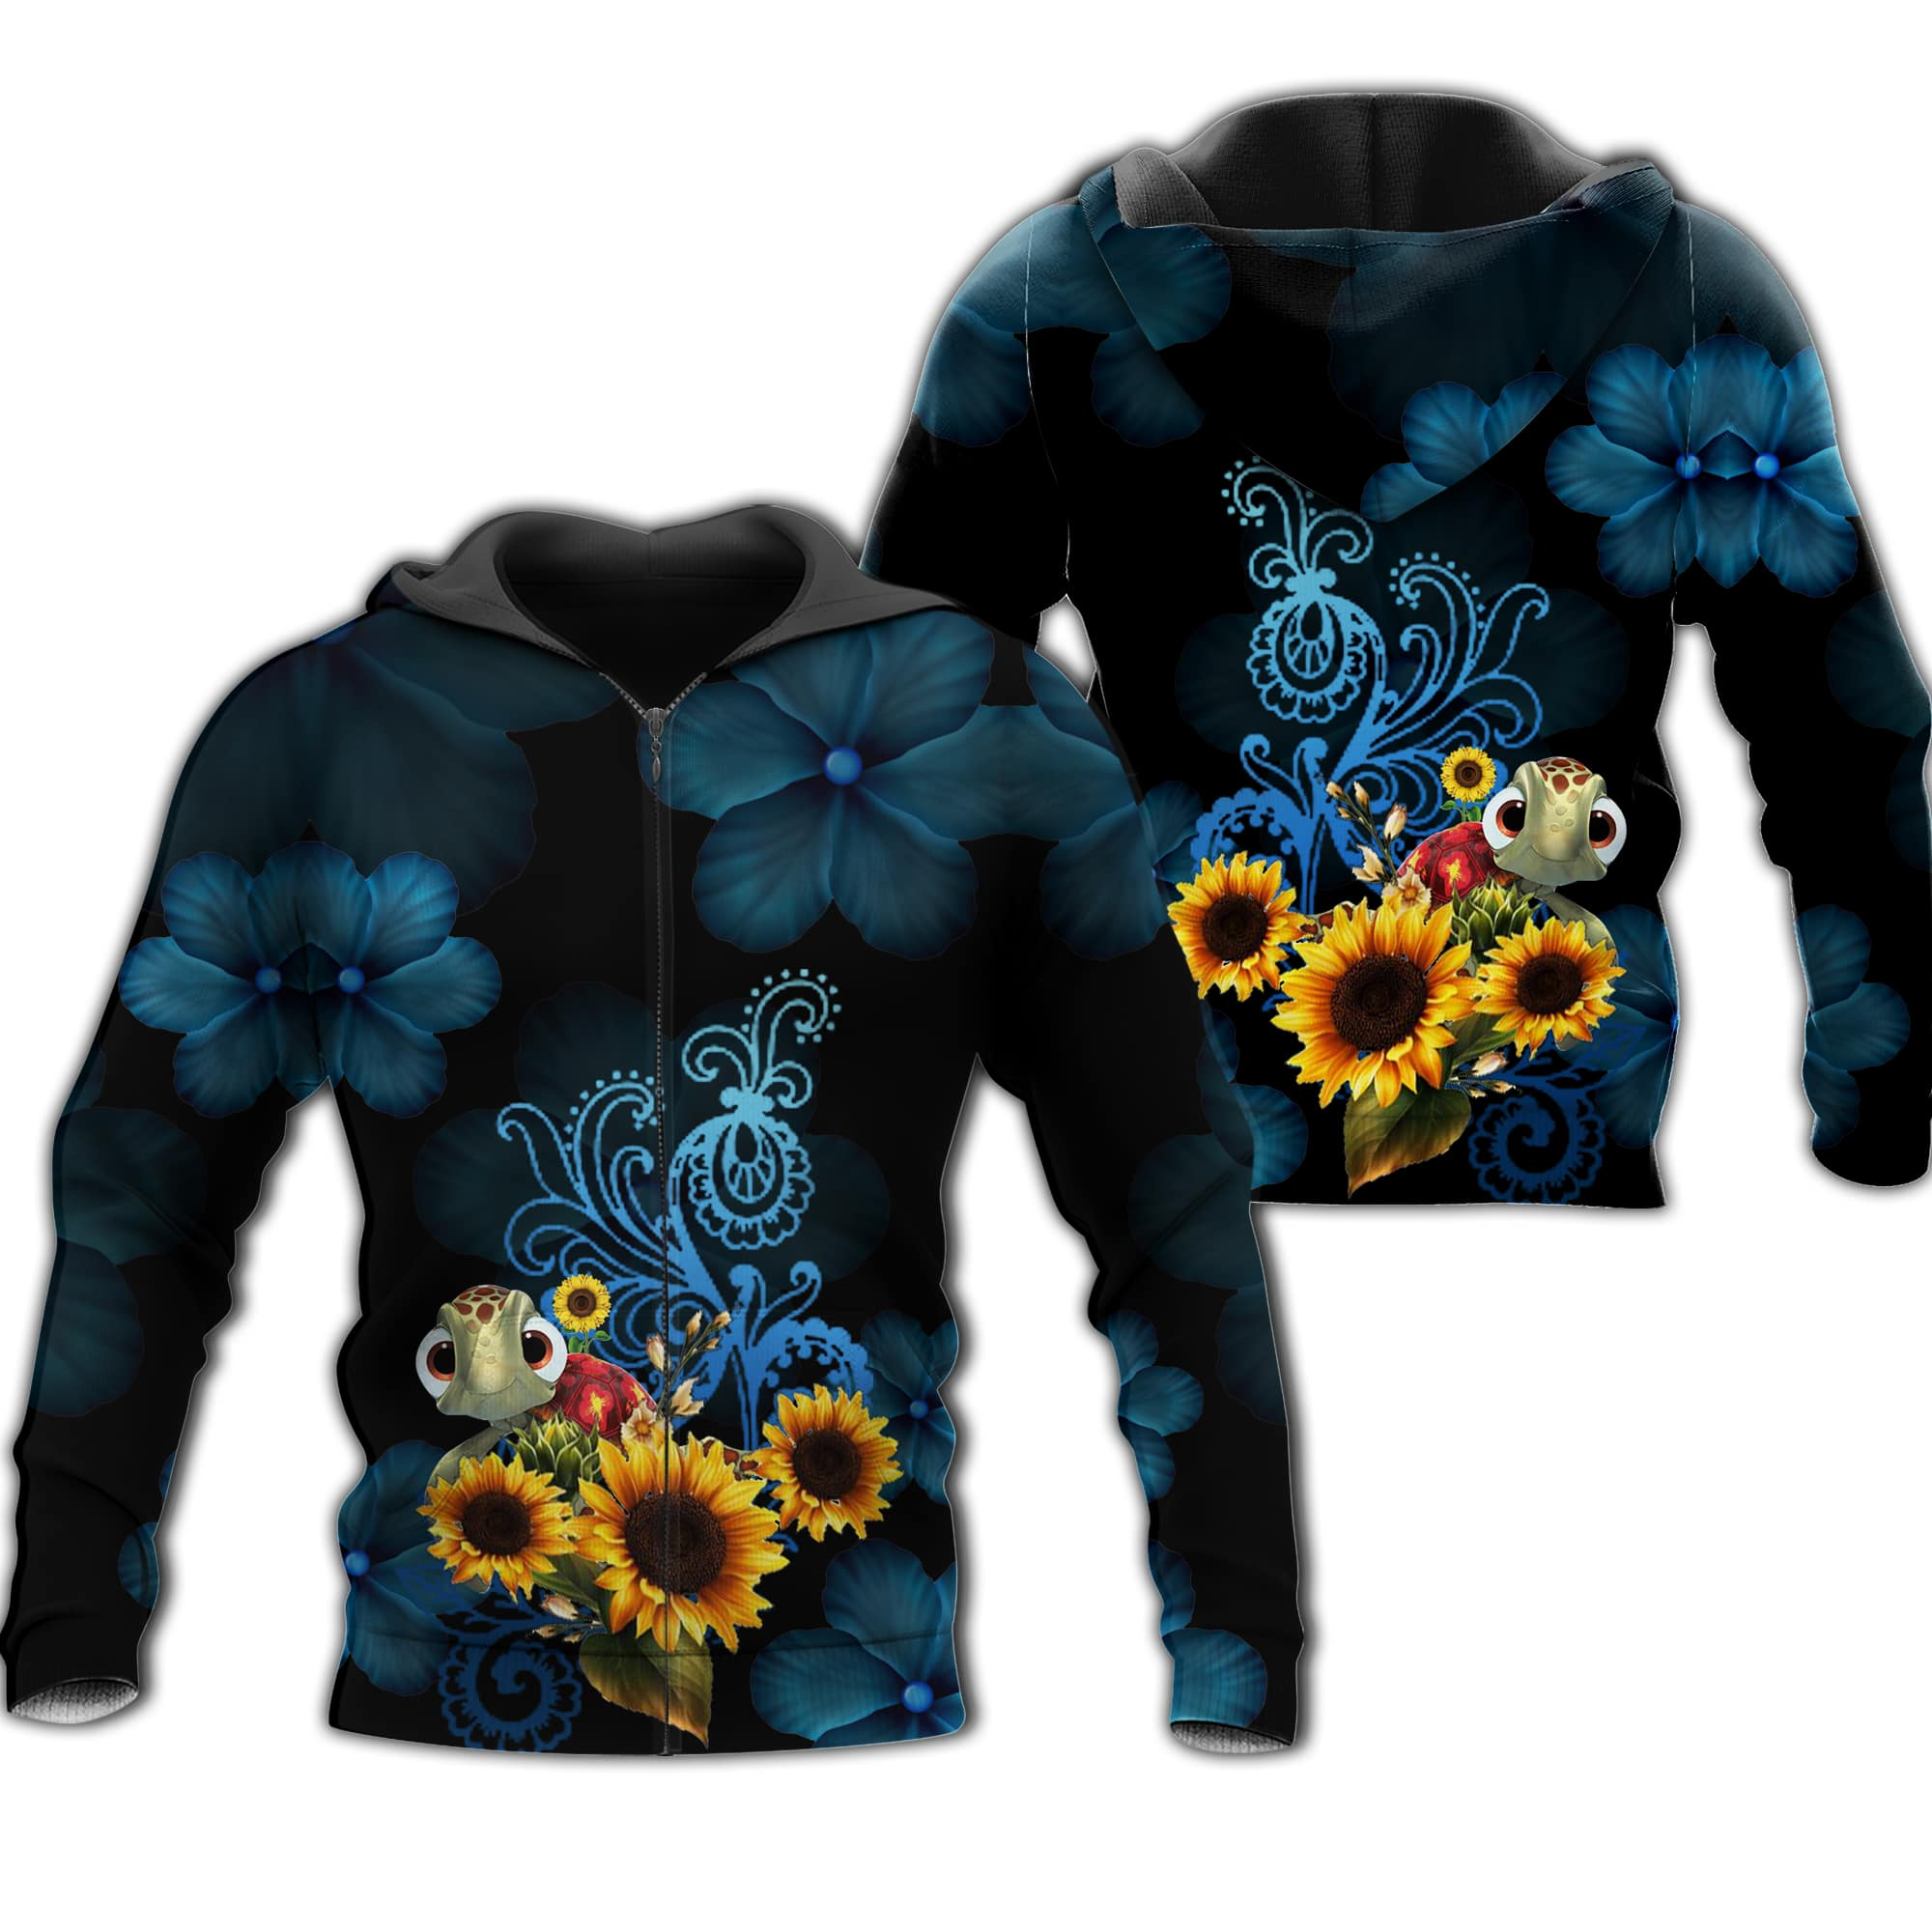 Nemo Sea Turtle 3D All Over Printed Shirts For Men And Women 46